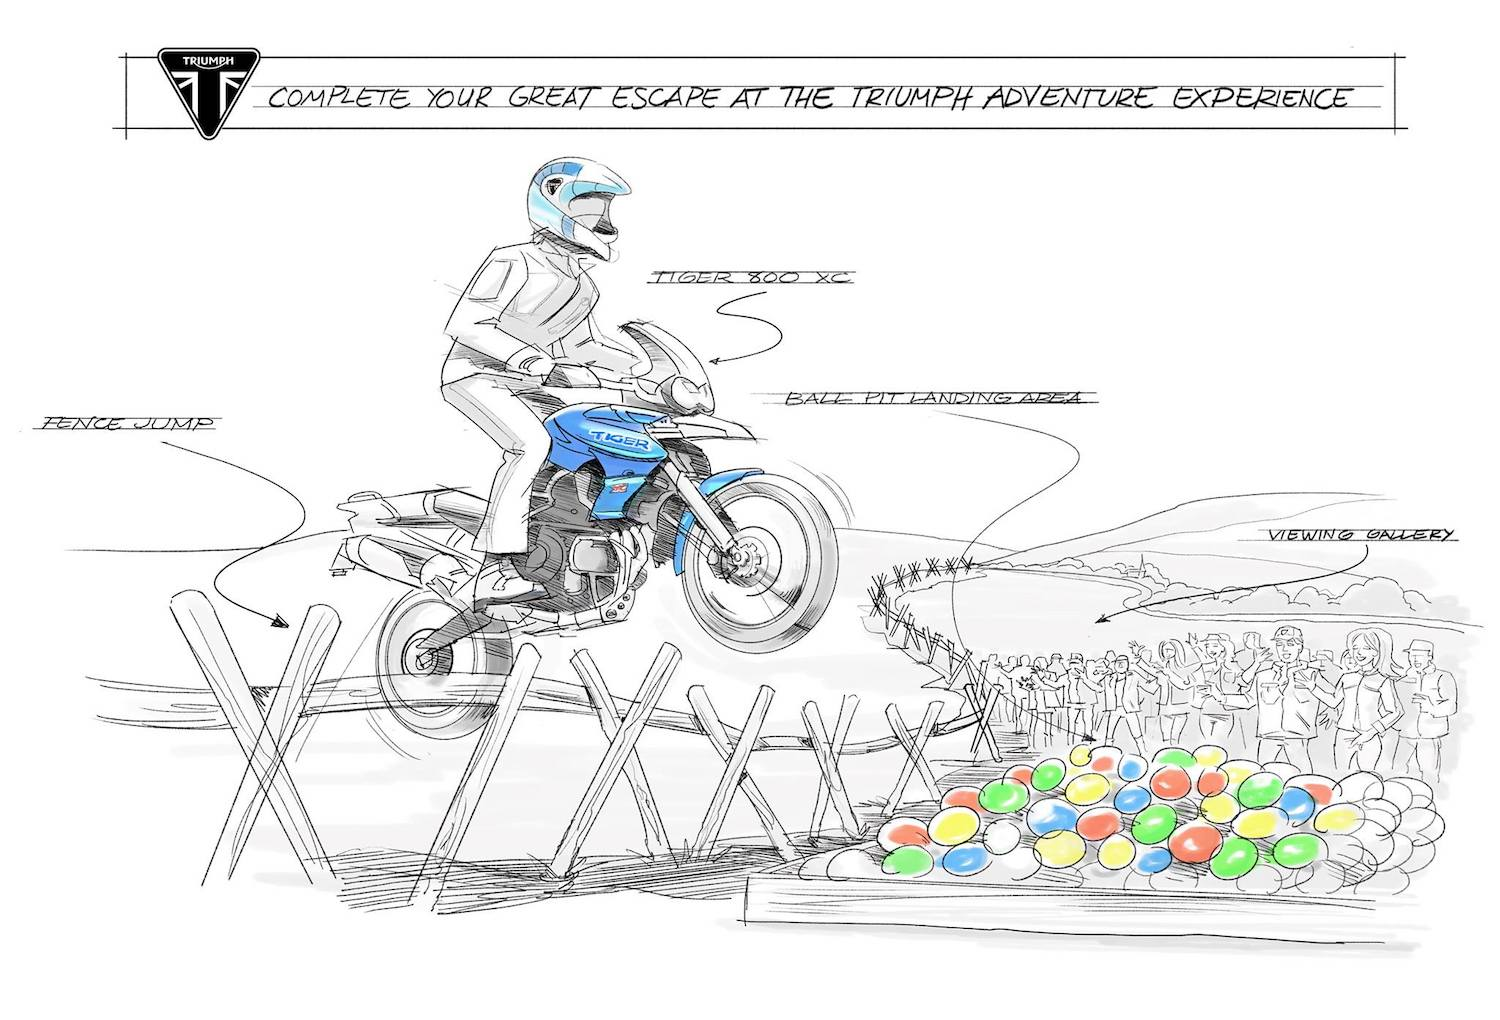 Triumph Adventure school in WalesApril Fool